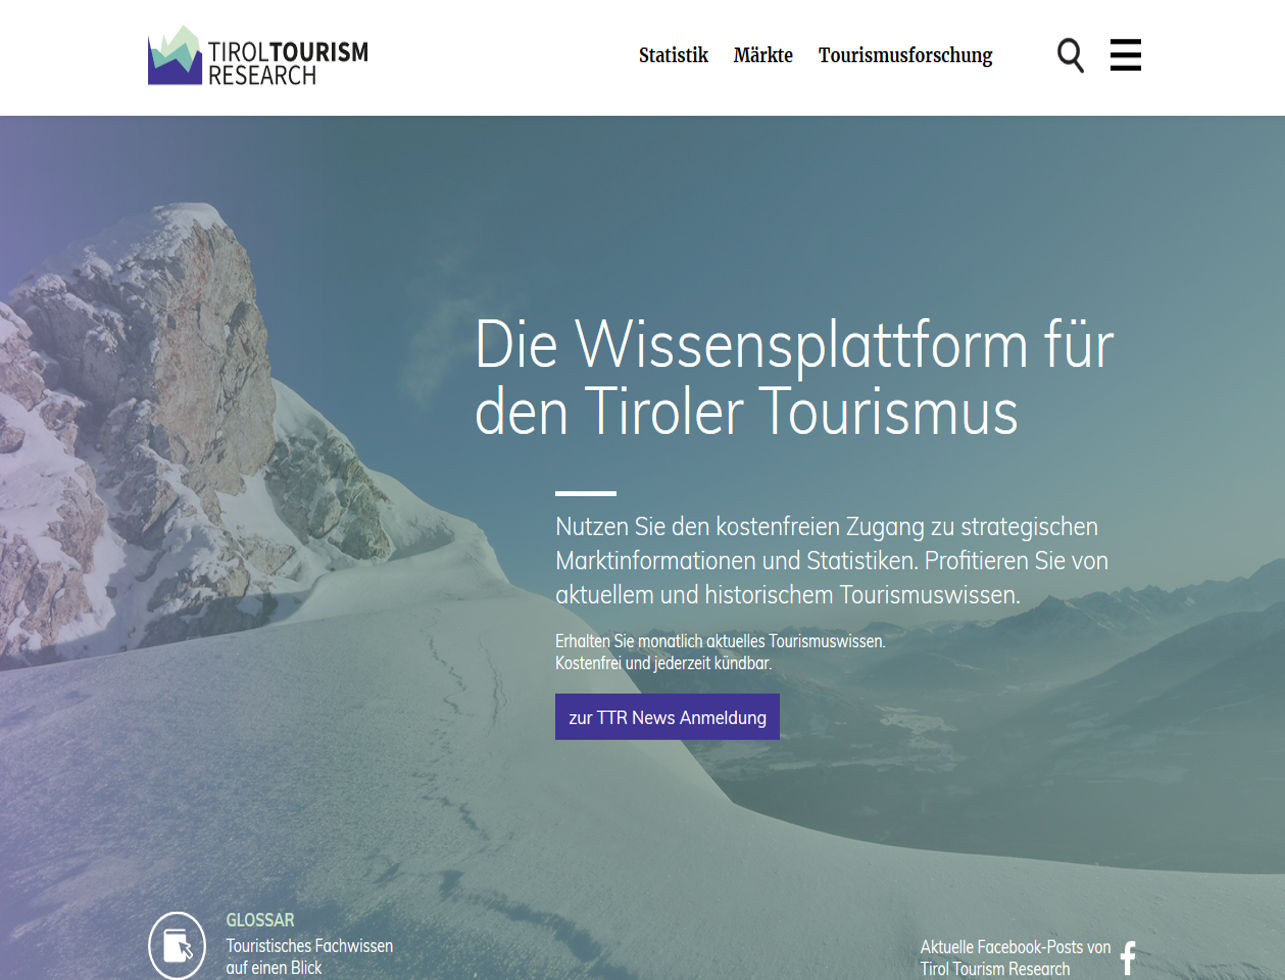 TTR 3.0 Tirol Tourism Research